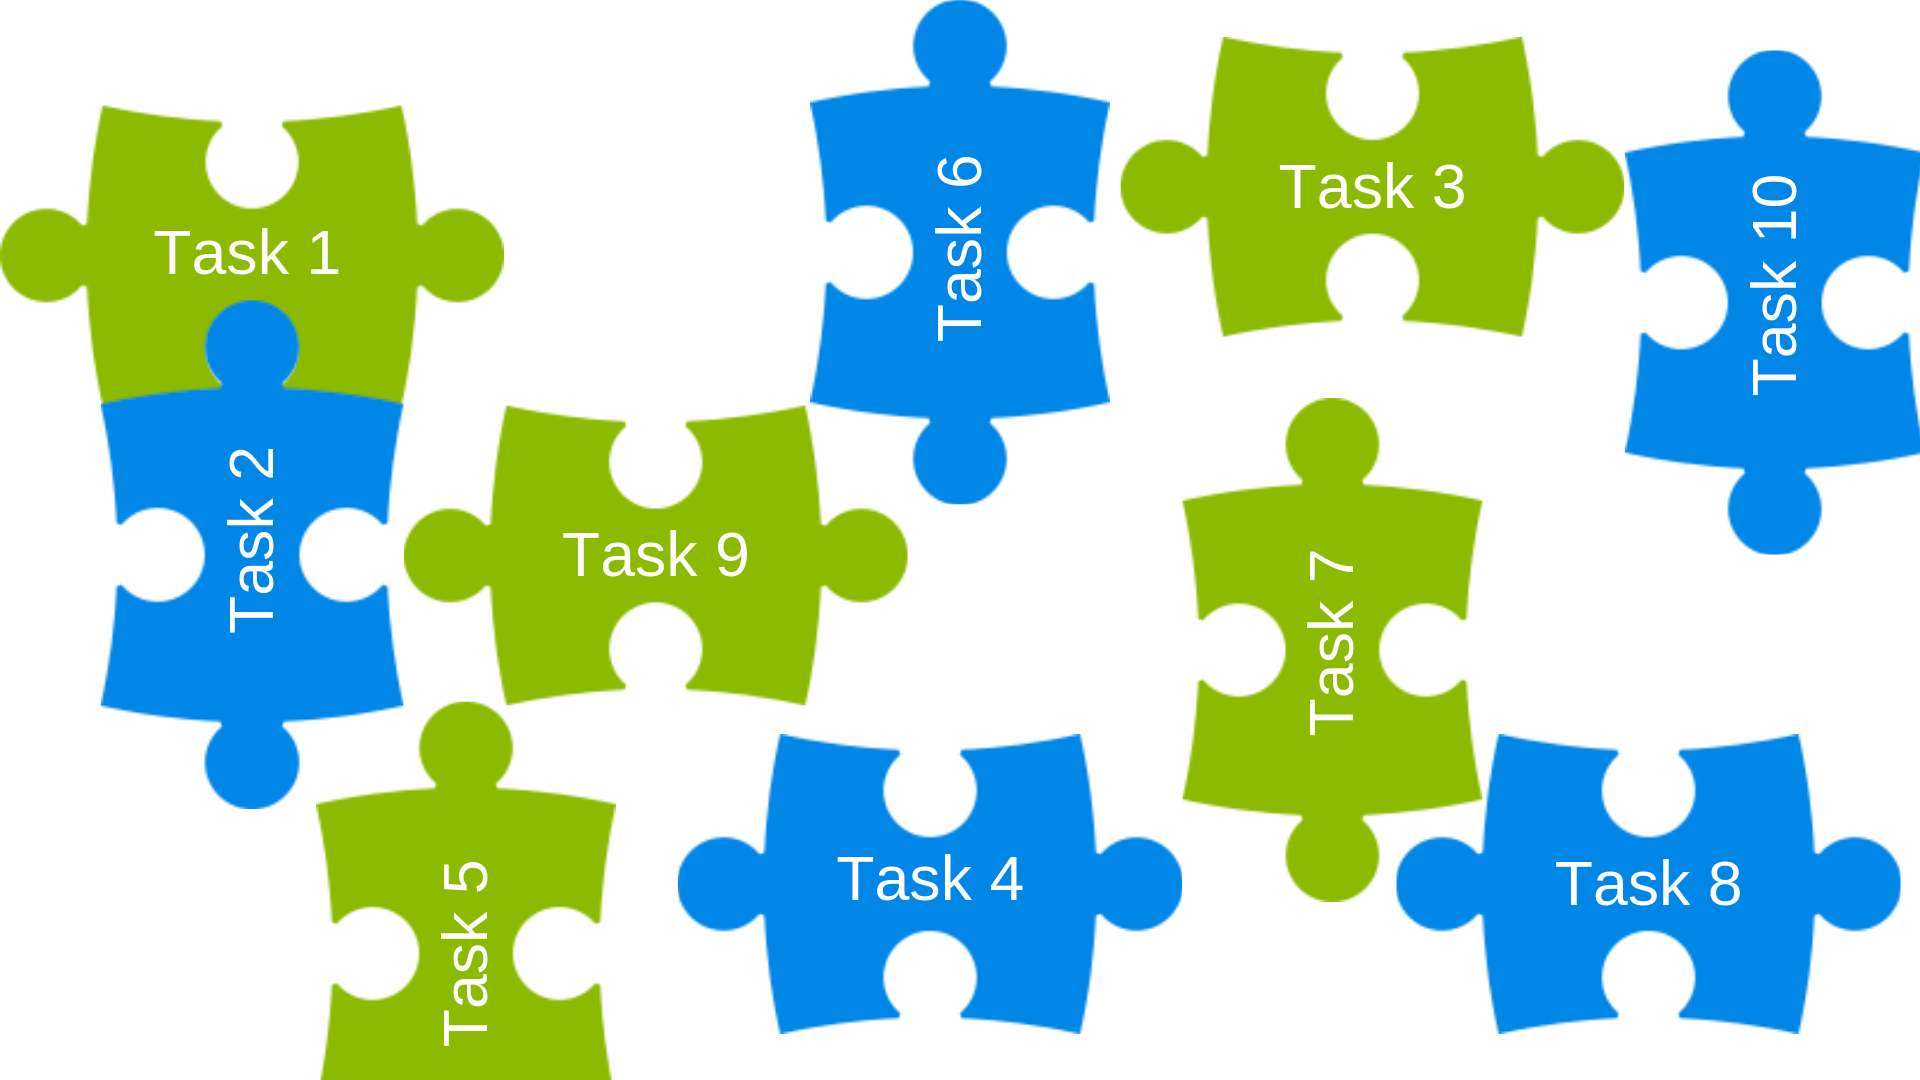 Without enterprise work collaboration tool